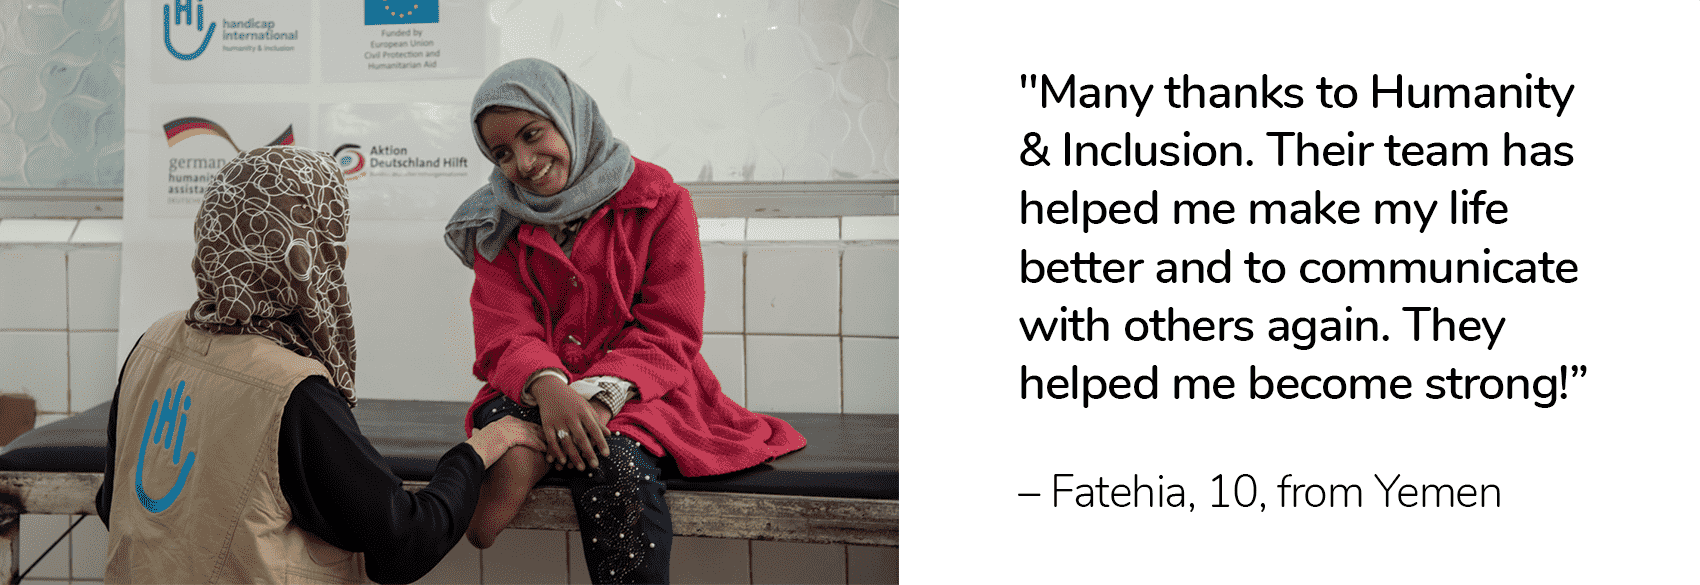 "Graphic that includes a photo and quote. On the left is a photo of Fatehia who sits on bench next to a physical therapist with Humanity & Inclusion during her physical therapy session. On the right side of the graphic, is Fatehia's quote ""Many thanks to Humanity & Inclusion. Their team has helped me make my life better and to communicate with others again. They helped me become strong again!"""